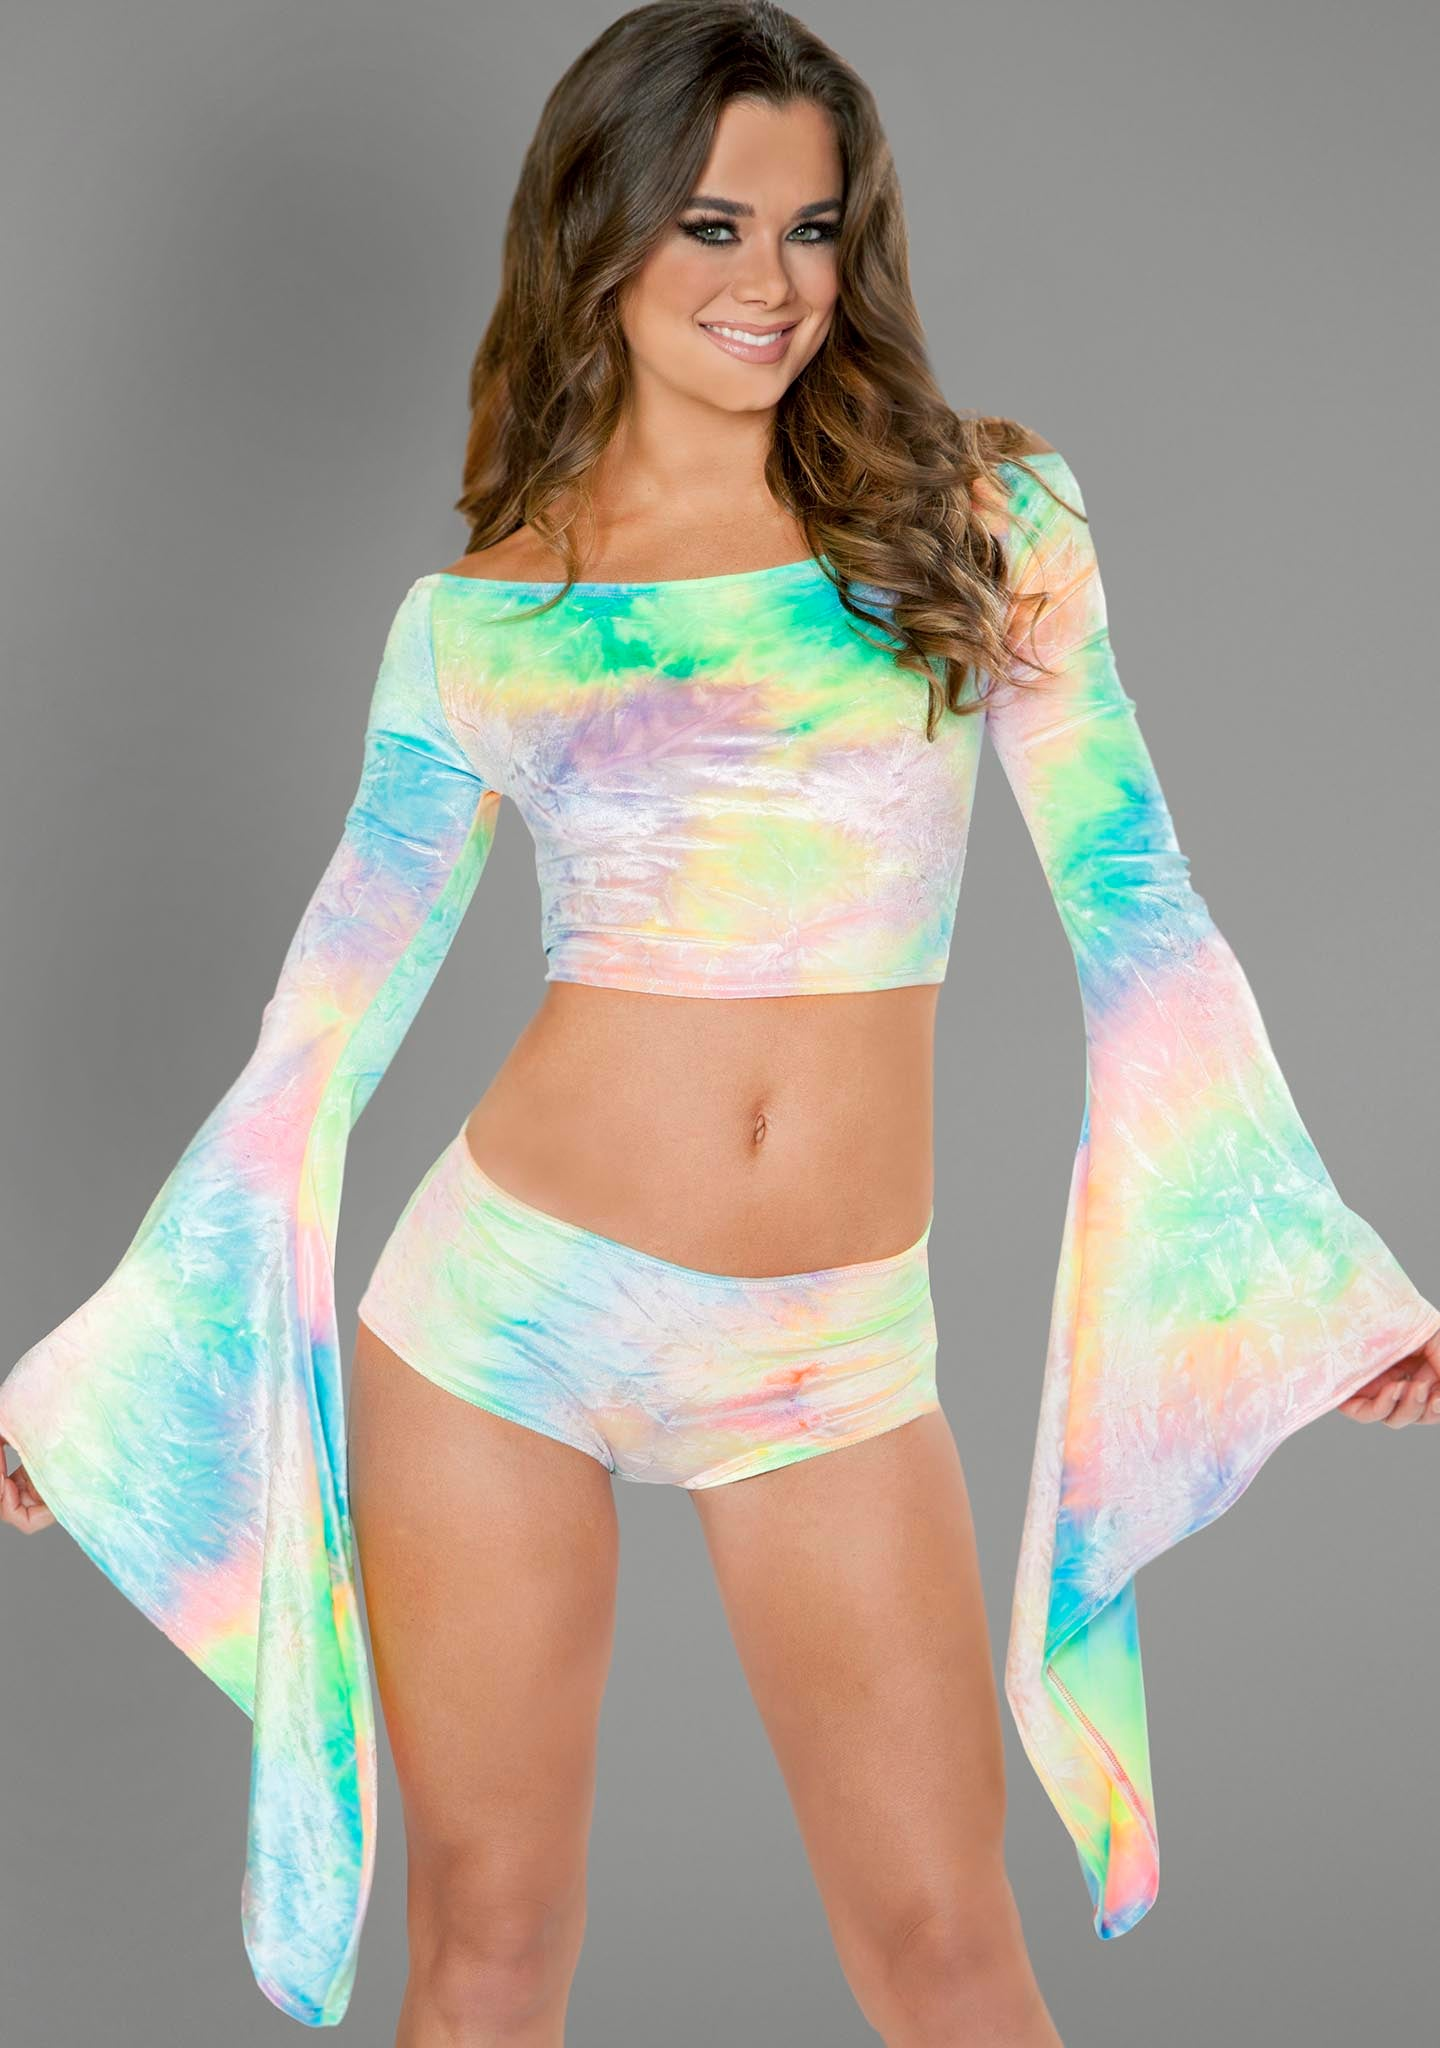 Gypsy Crop Top in Pastel Tie Dye